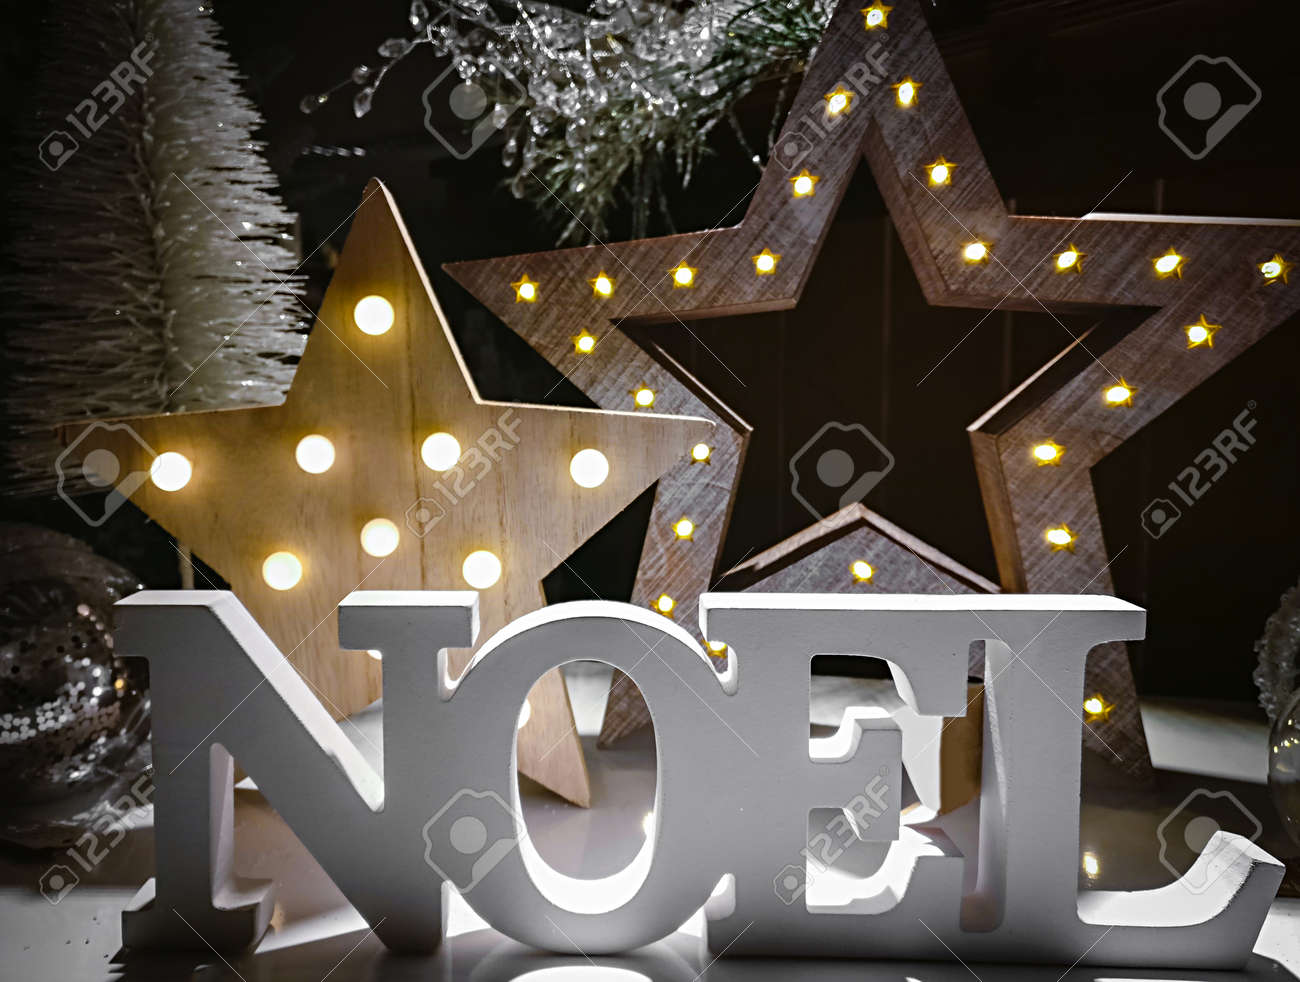 Noel Word Made Of Wooden Letters On A Background Illuminated